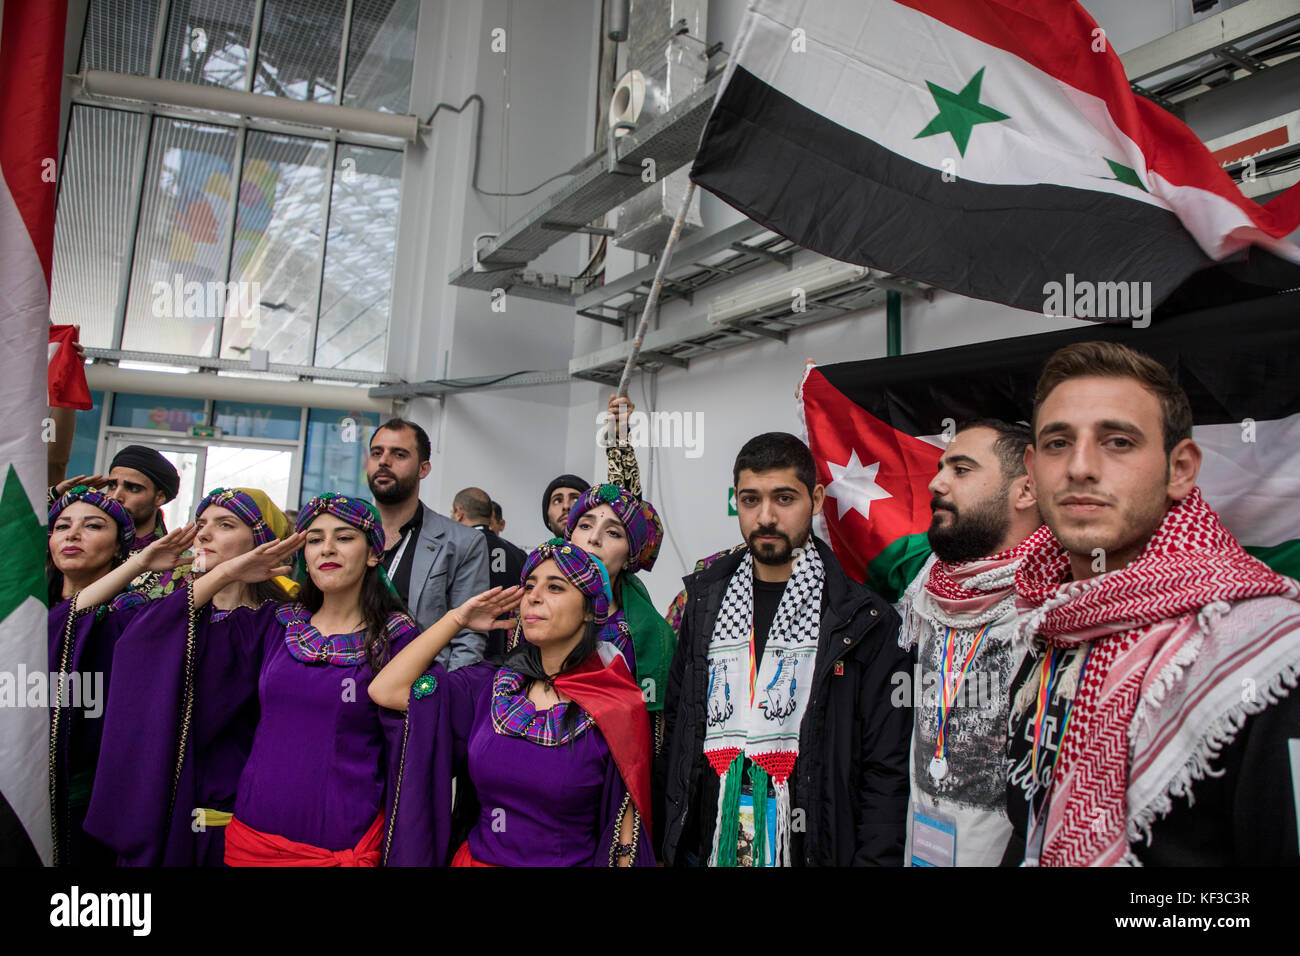 Syrian people wave the national flag at the 2017 World Festival of Youth and Students in the Olympic Park's - Stock Image